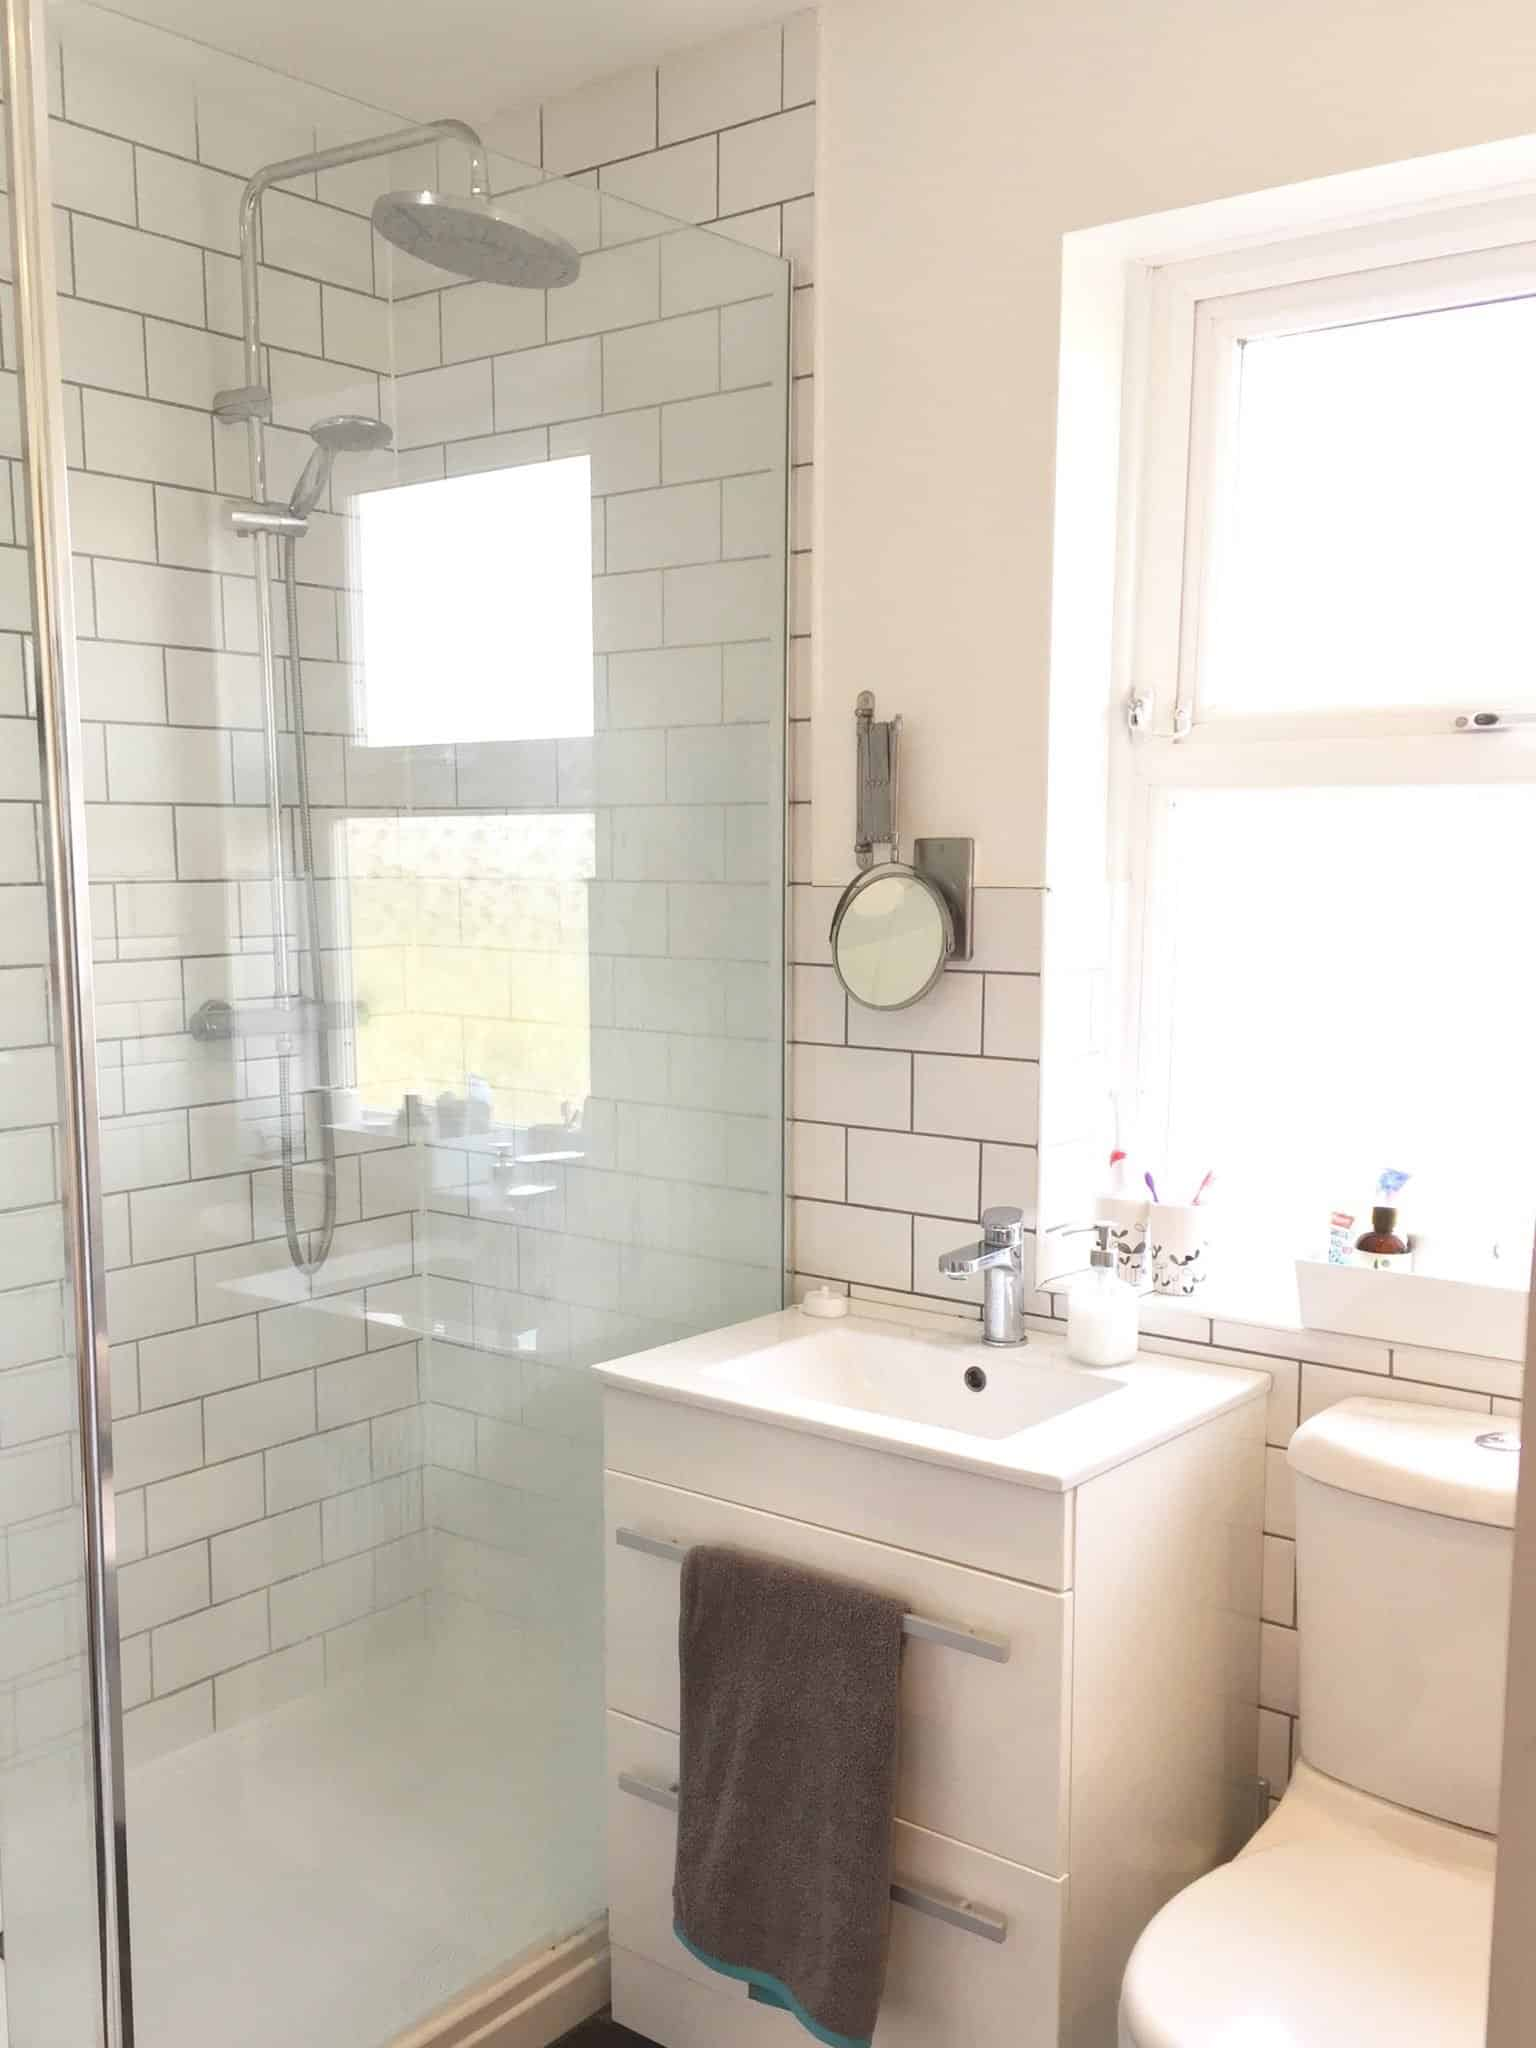 Walk in shower, sink and vanity unit and toilet in monochrome bathroom